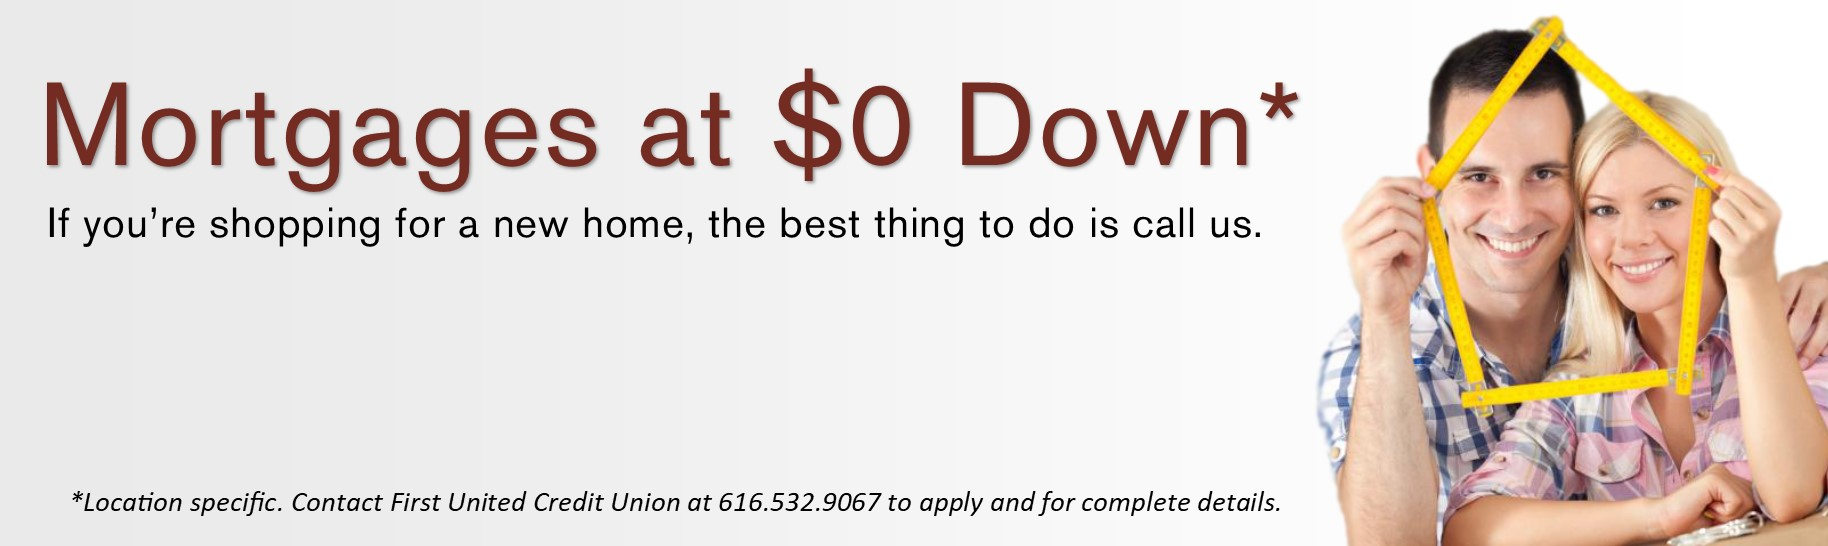 1170-350-0-dollar-homemortgages